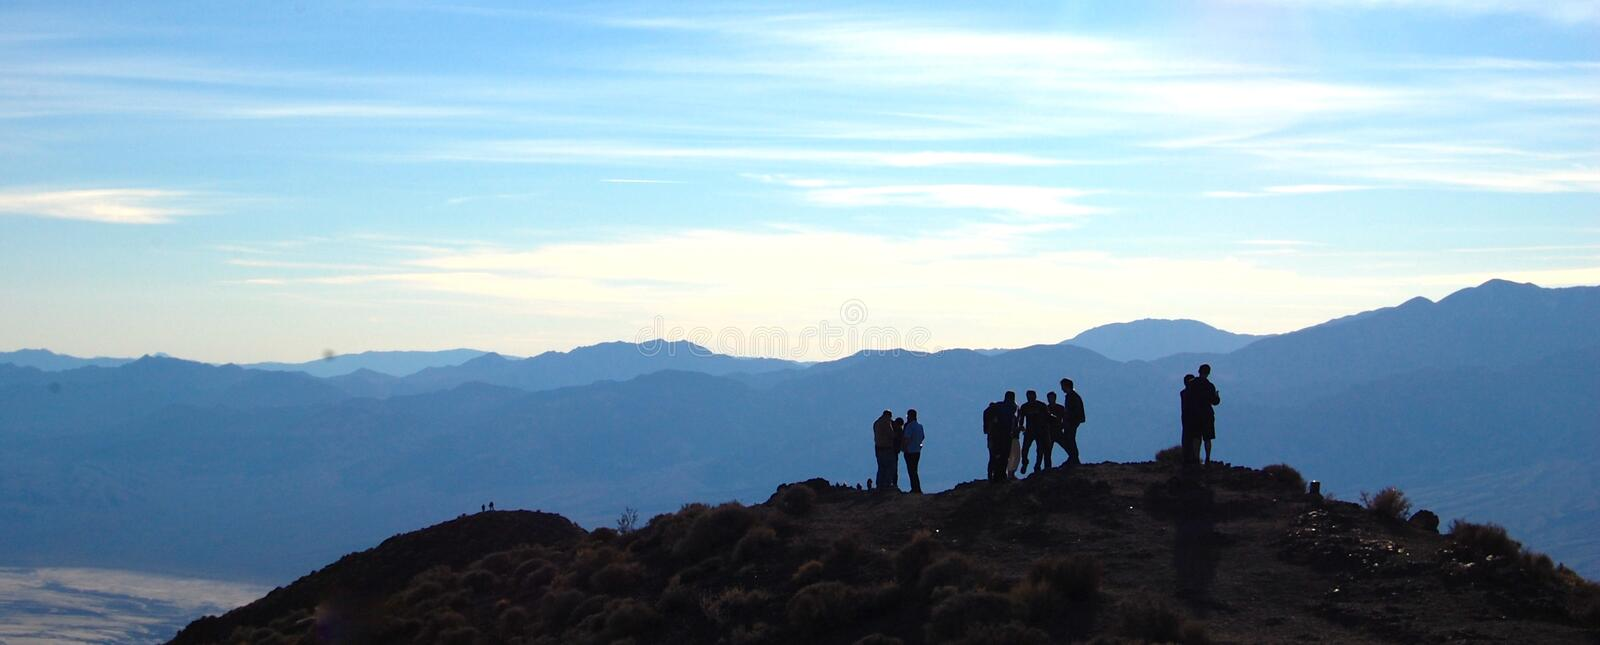 Hikers Taking Pleasure in Their View from the Top. Captivating landscape with hikers in the front creating a silhouette stock image